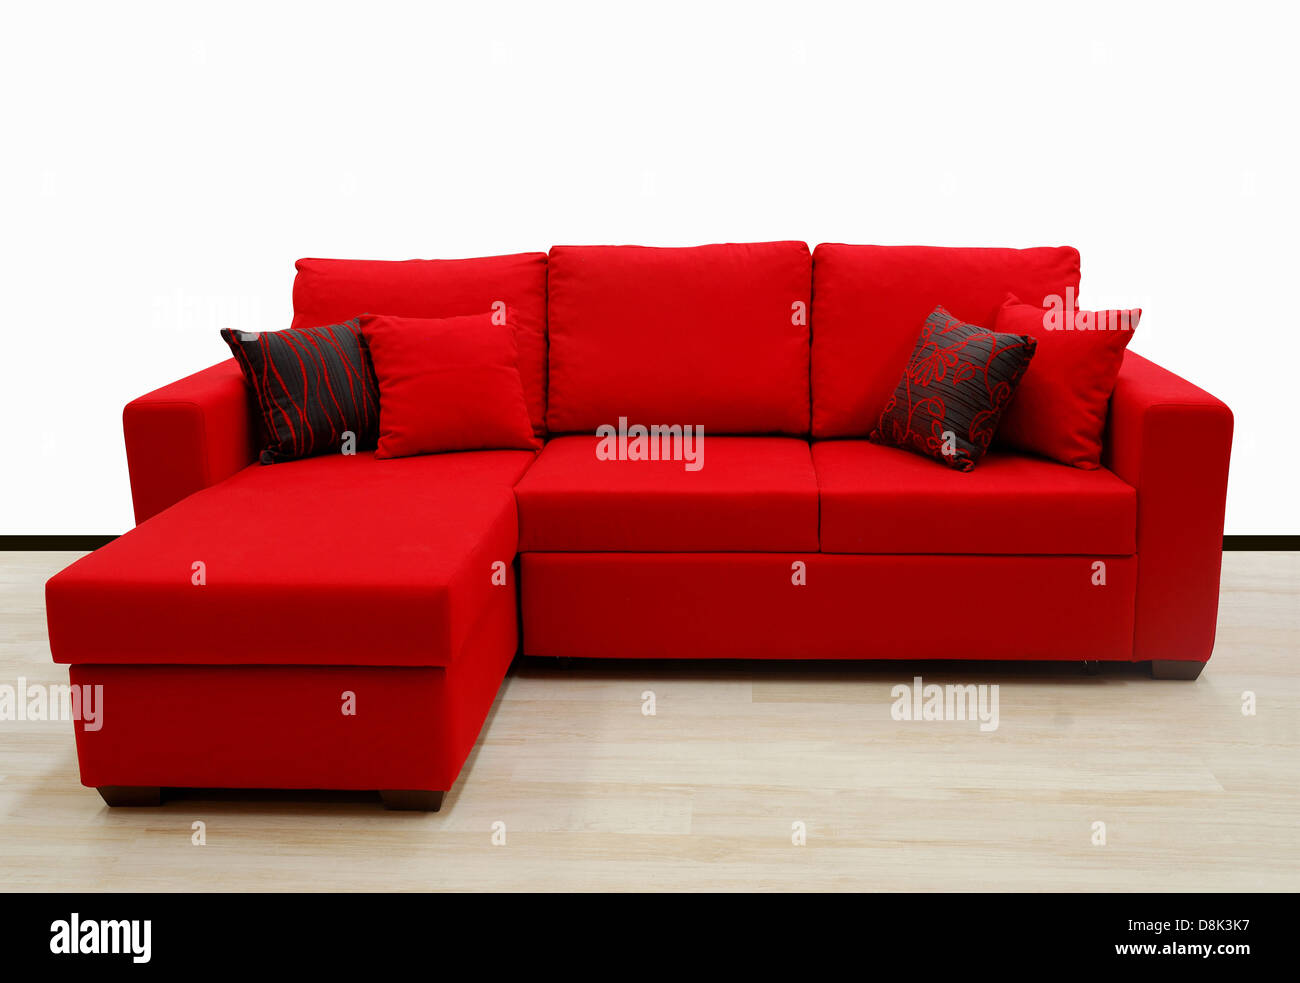 L shape fabric four sitter sofa, red color - Stock Image